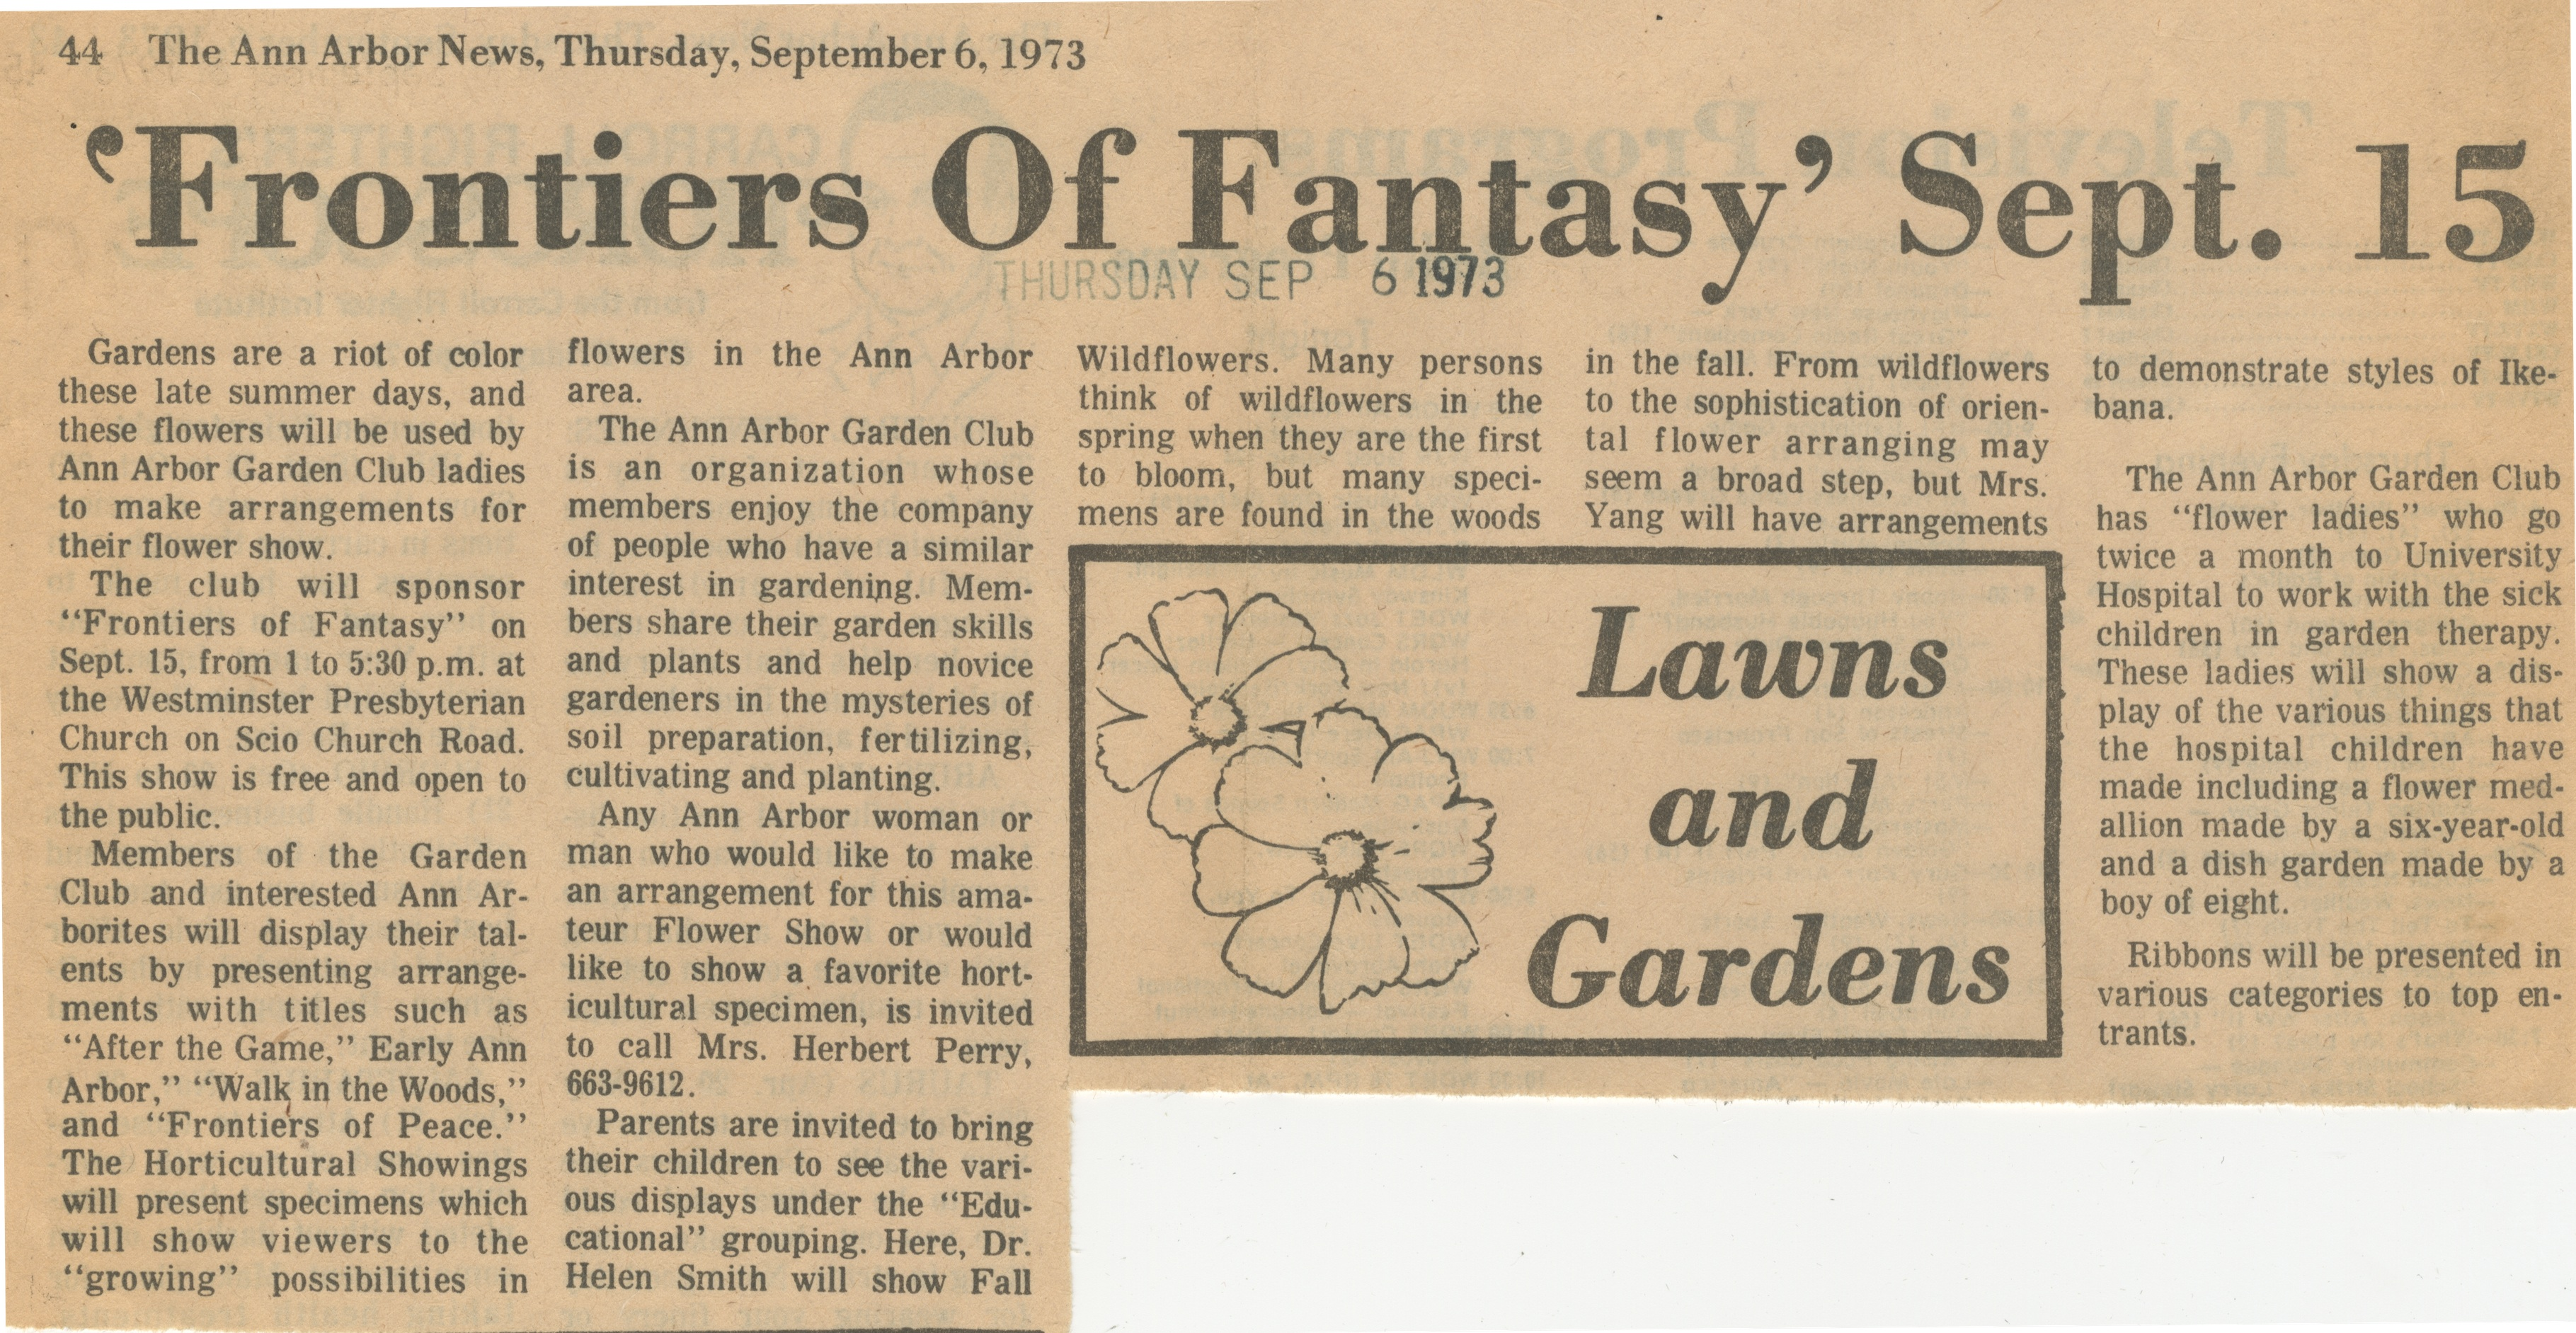 """Frontiers of Fantasy"" Sept. 15 image"